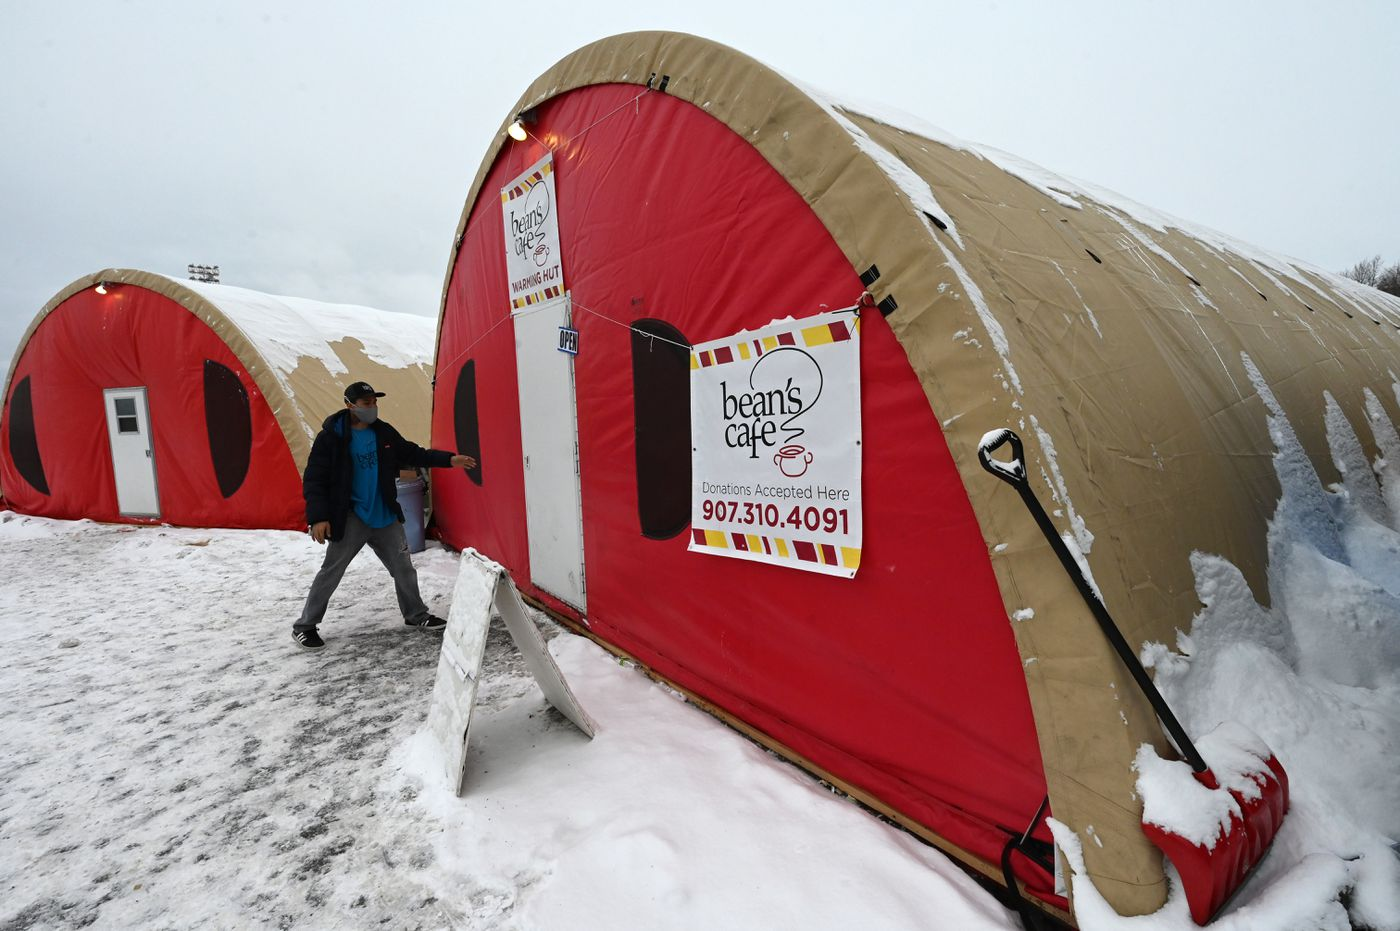 Grady Dollison, a lead monitor with Bean's Cafe, checks on one of the warming tents in Sullivan Arena parking lot on Wednesday, Feb. 24, 2021. (Bill Roth / ADN)